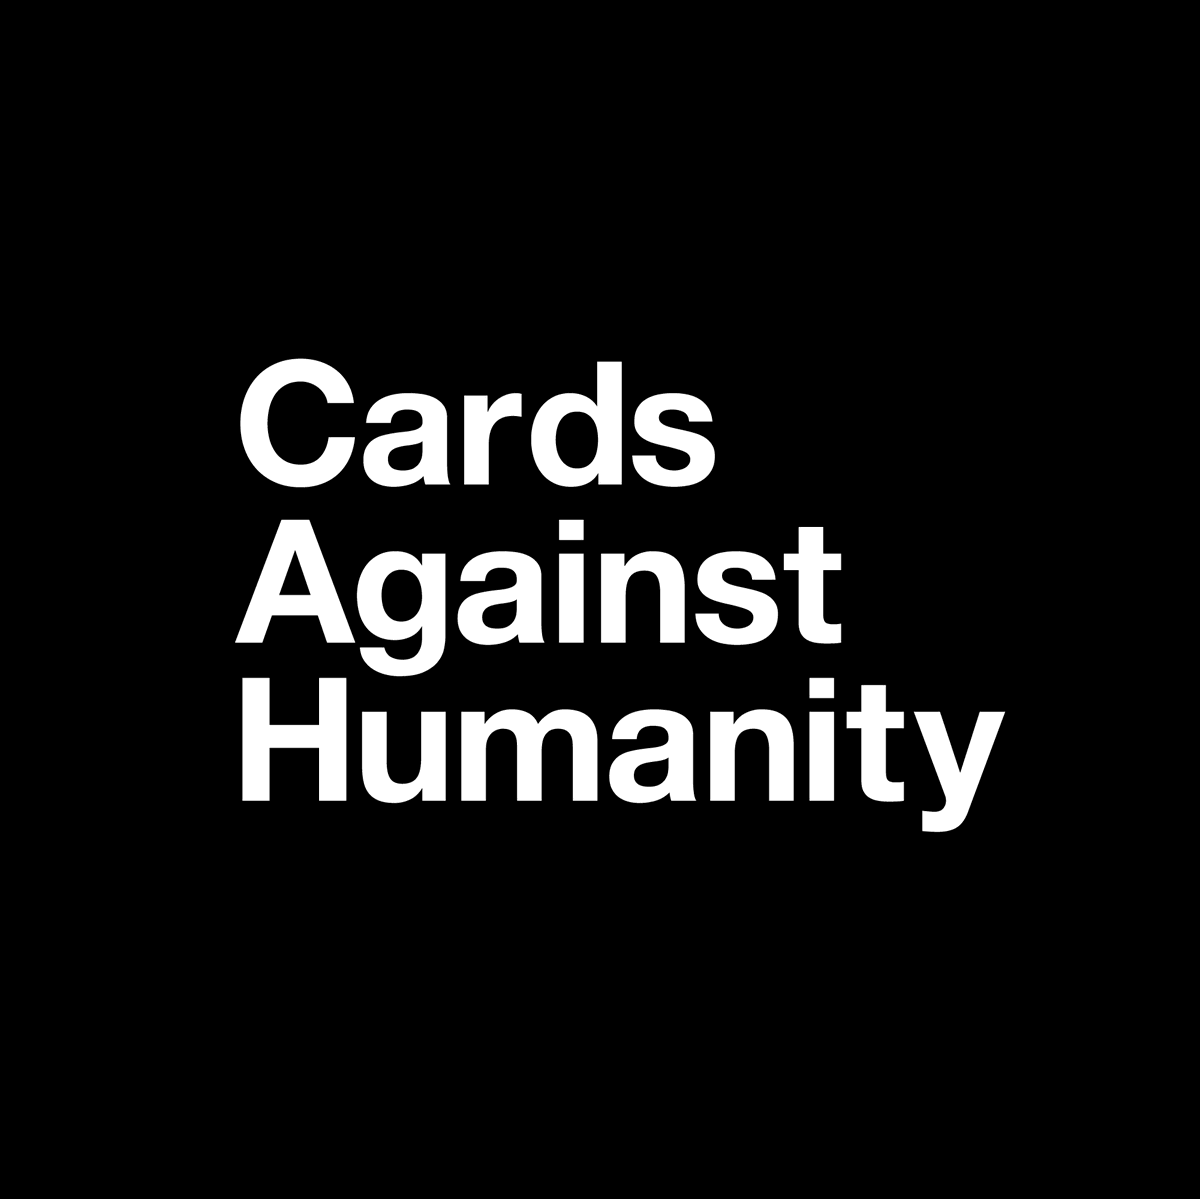 Need a quick break and a bit of a laugh?  The Gaming Club have a Cards Against Humanity game this afternoon at 3:00PM. Click the button below to join:  https://go.dcsu.co.uk/2UC9CETpic.twitter.com/iDokgOi75J